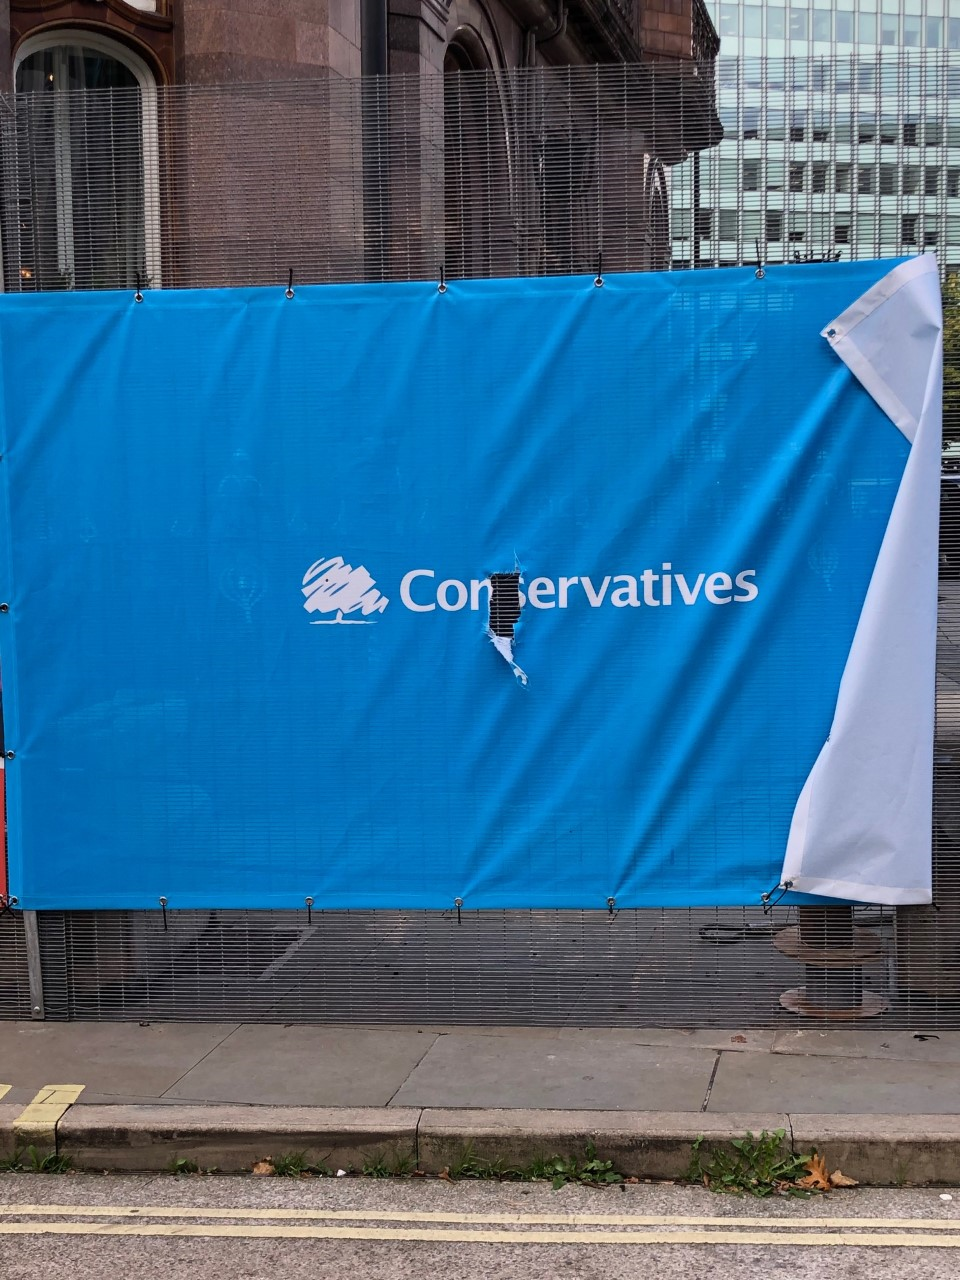 Ripped Conservative party banner